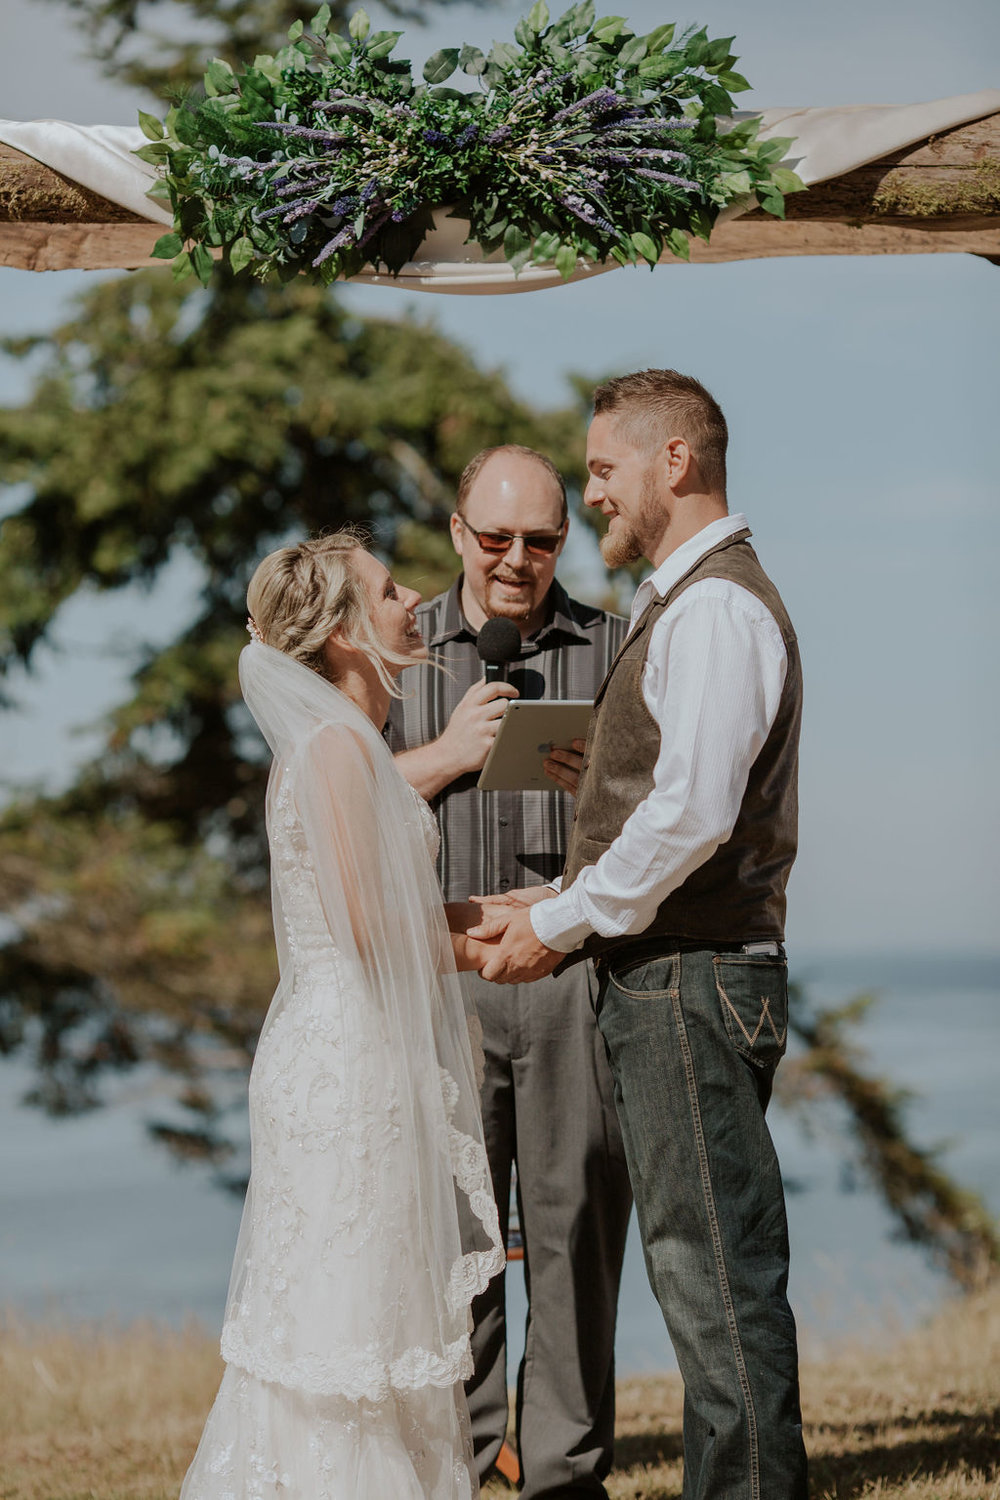 Port-Angeles-Wedding-Photographer-pnw-Whiskey-Creek-Beach-NW-Washington-couples-kayladawnphoto-kayla-dawn-photography-olympic-peninsula-hurricane-ridge-90.jpg